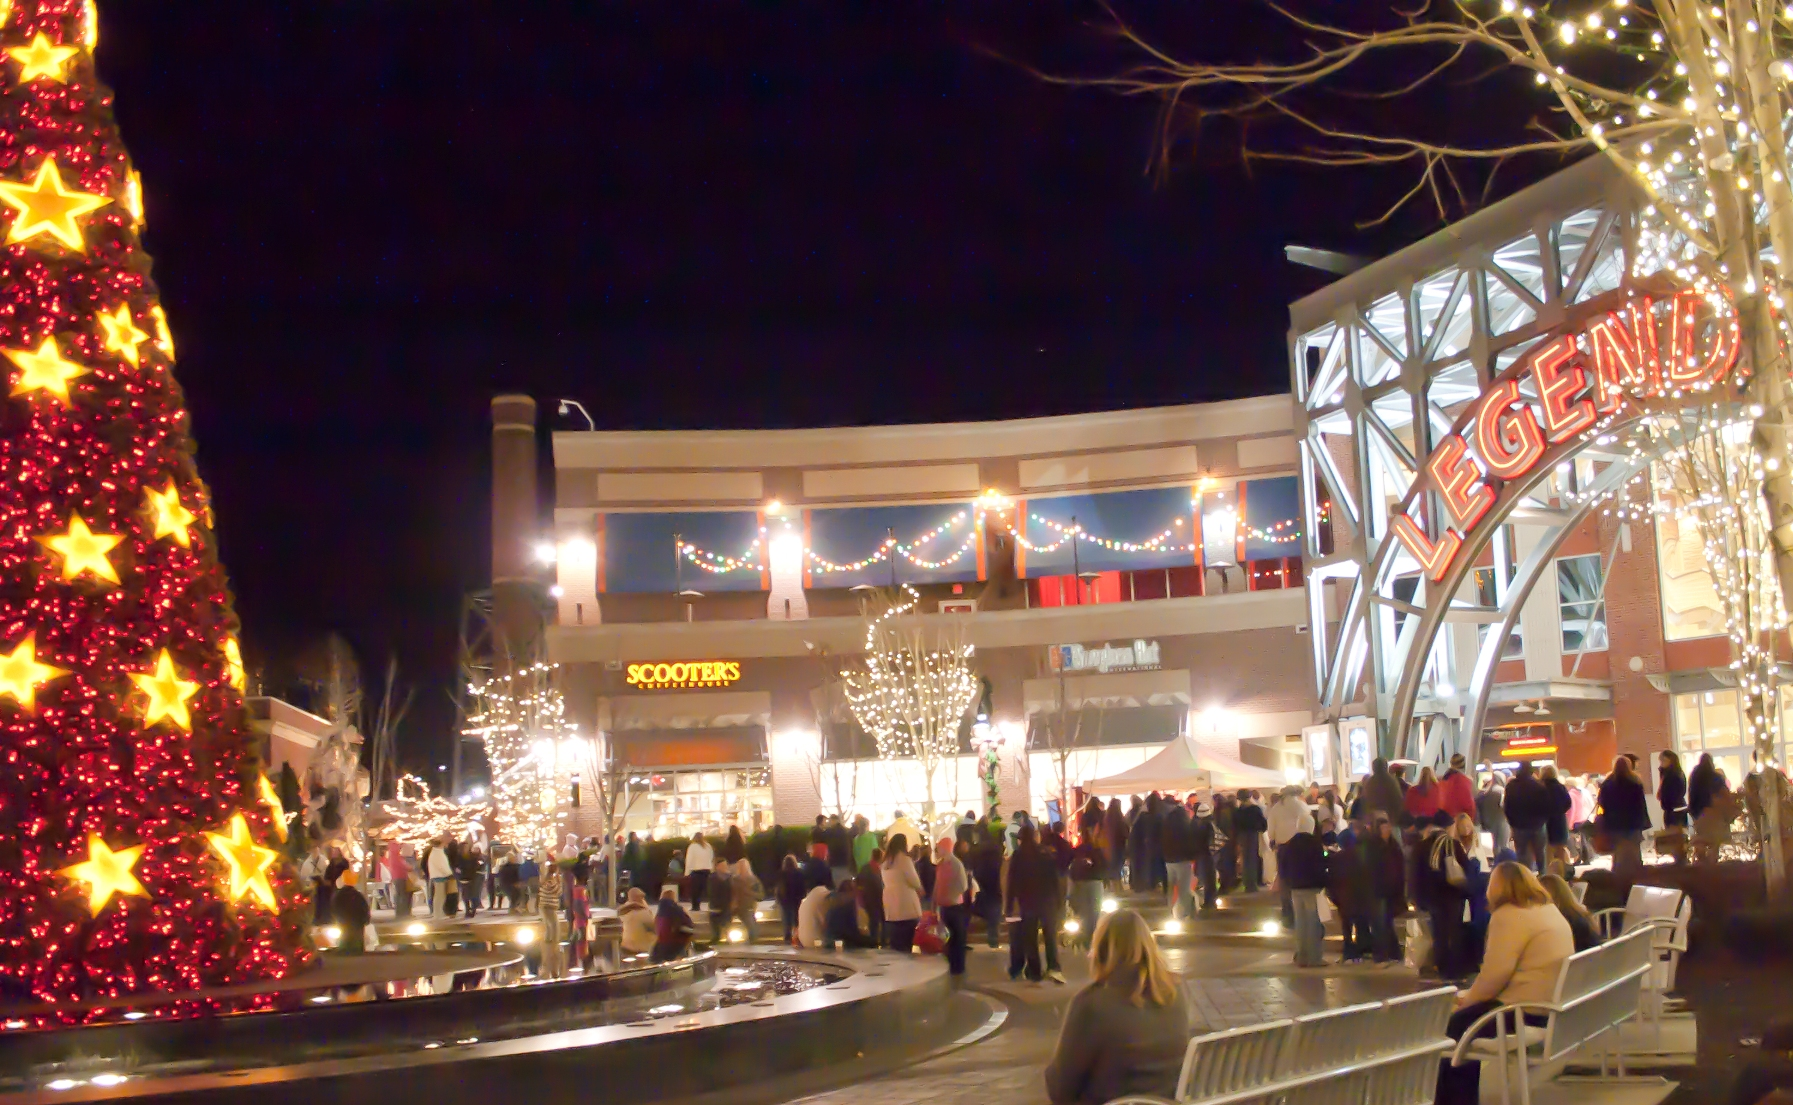 Legends Outlets opens on Thanksgiving (Thursday, November 24) at 10:00 p.m., with several retailers offering an addition 60 percent off the entire store.